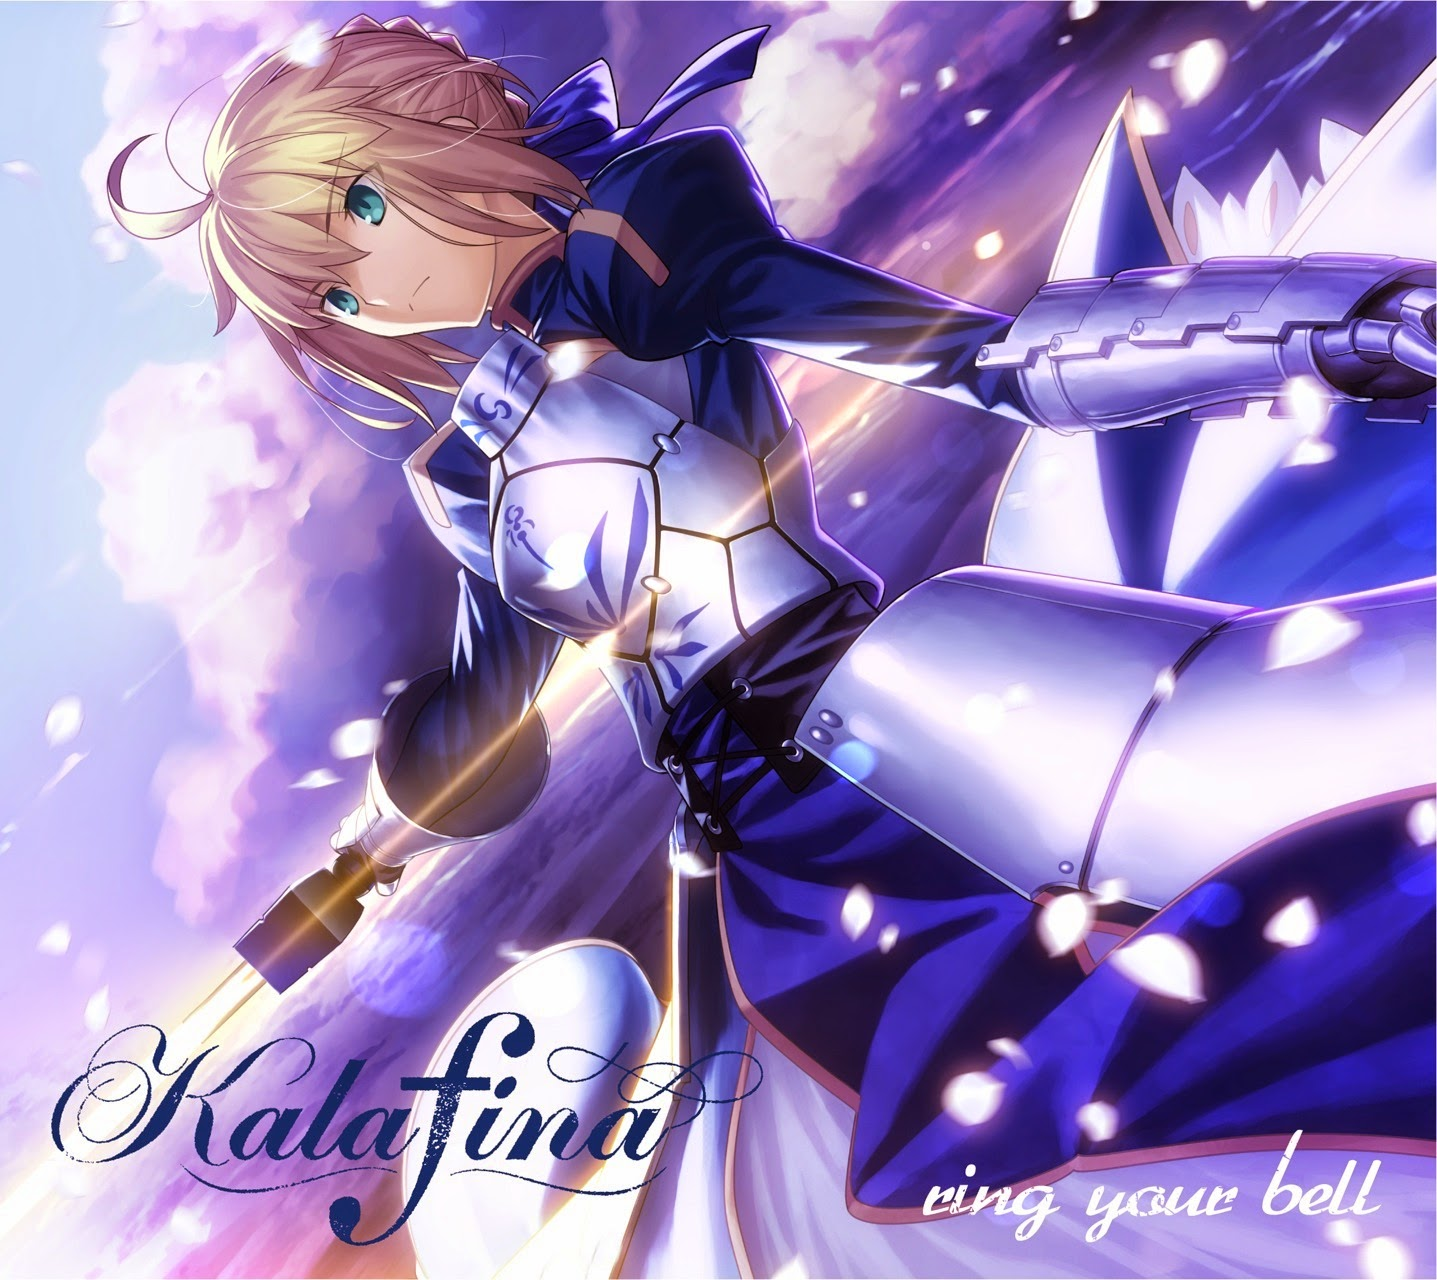 just me: Kalafina ~ ring your bell - anime / analog LE ...